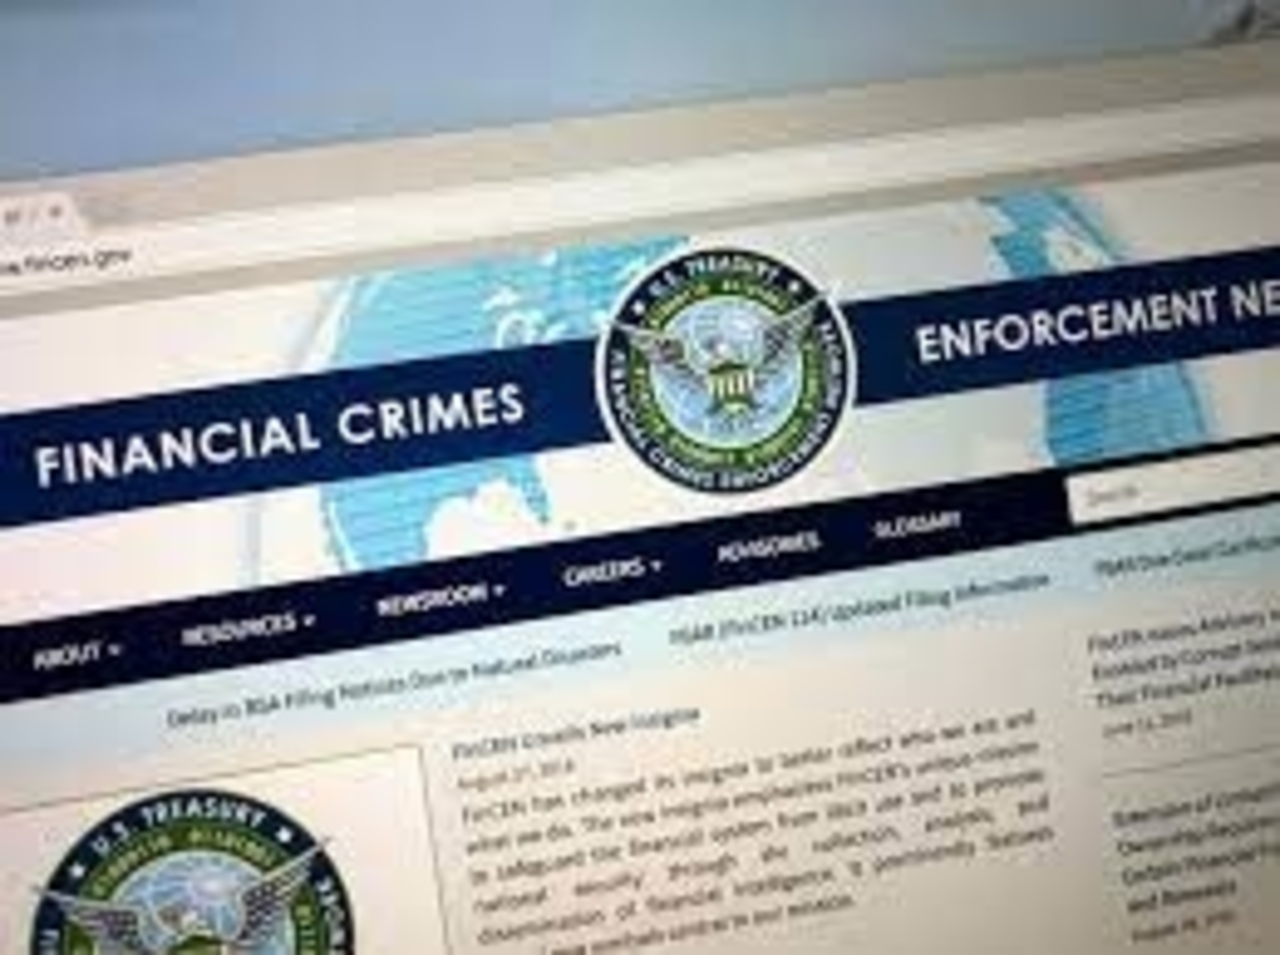 Breaking: FinCEN Links $5.2 Billion to Bitcoin ($BTC) Ransomware Payments